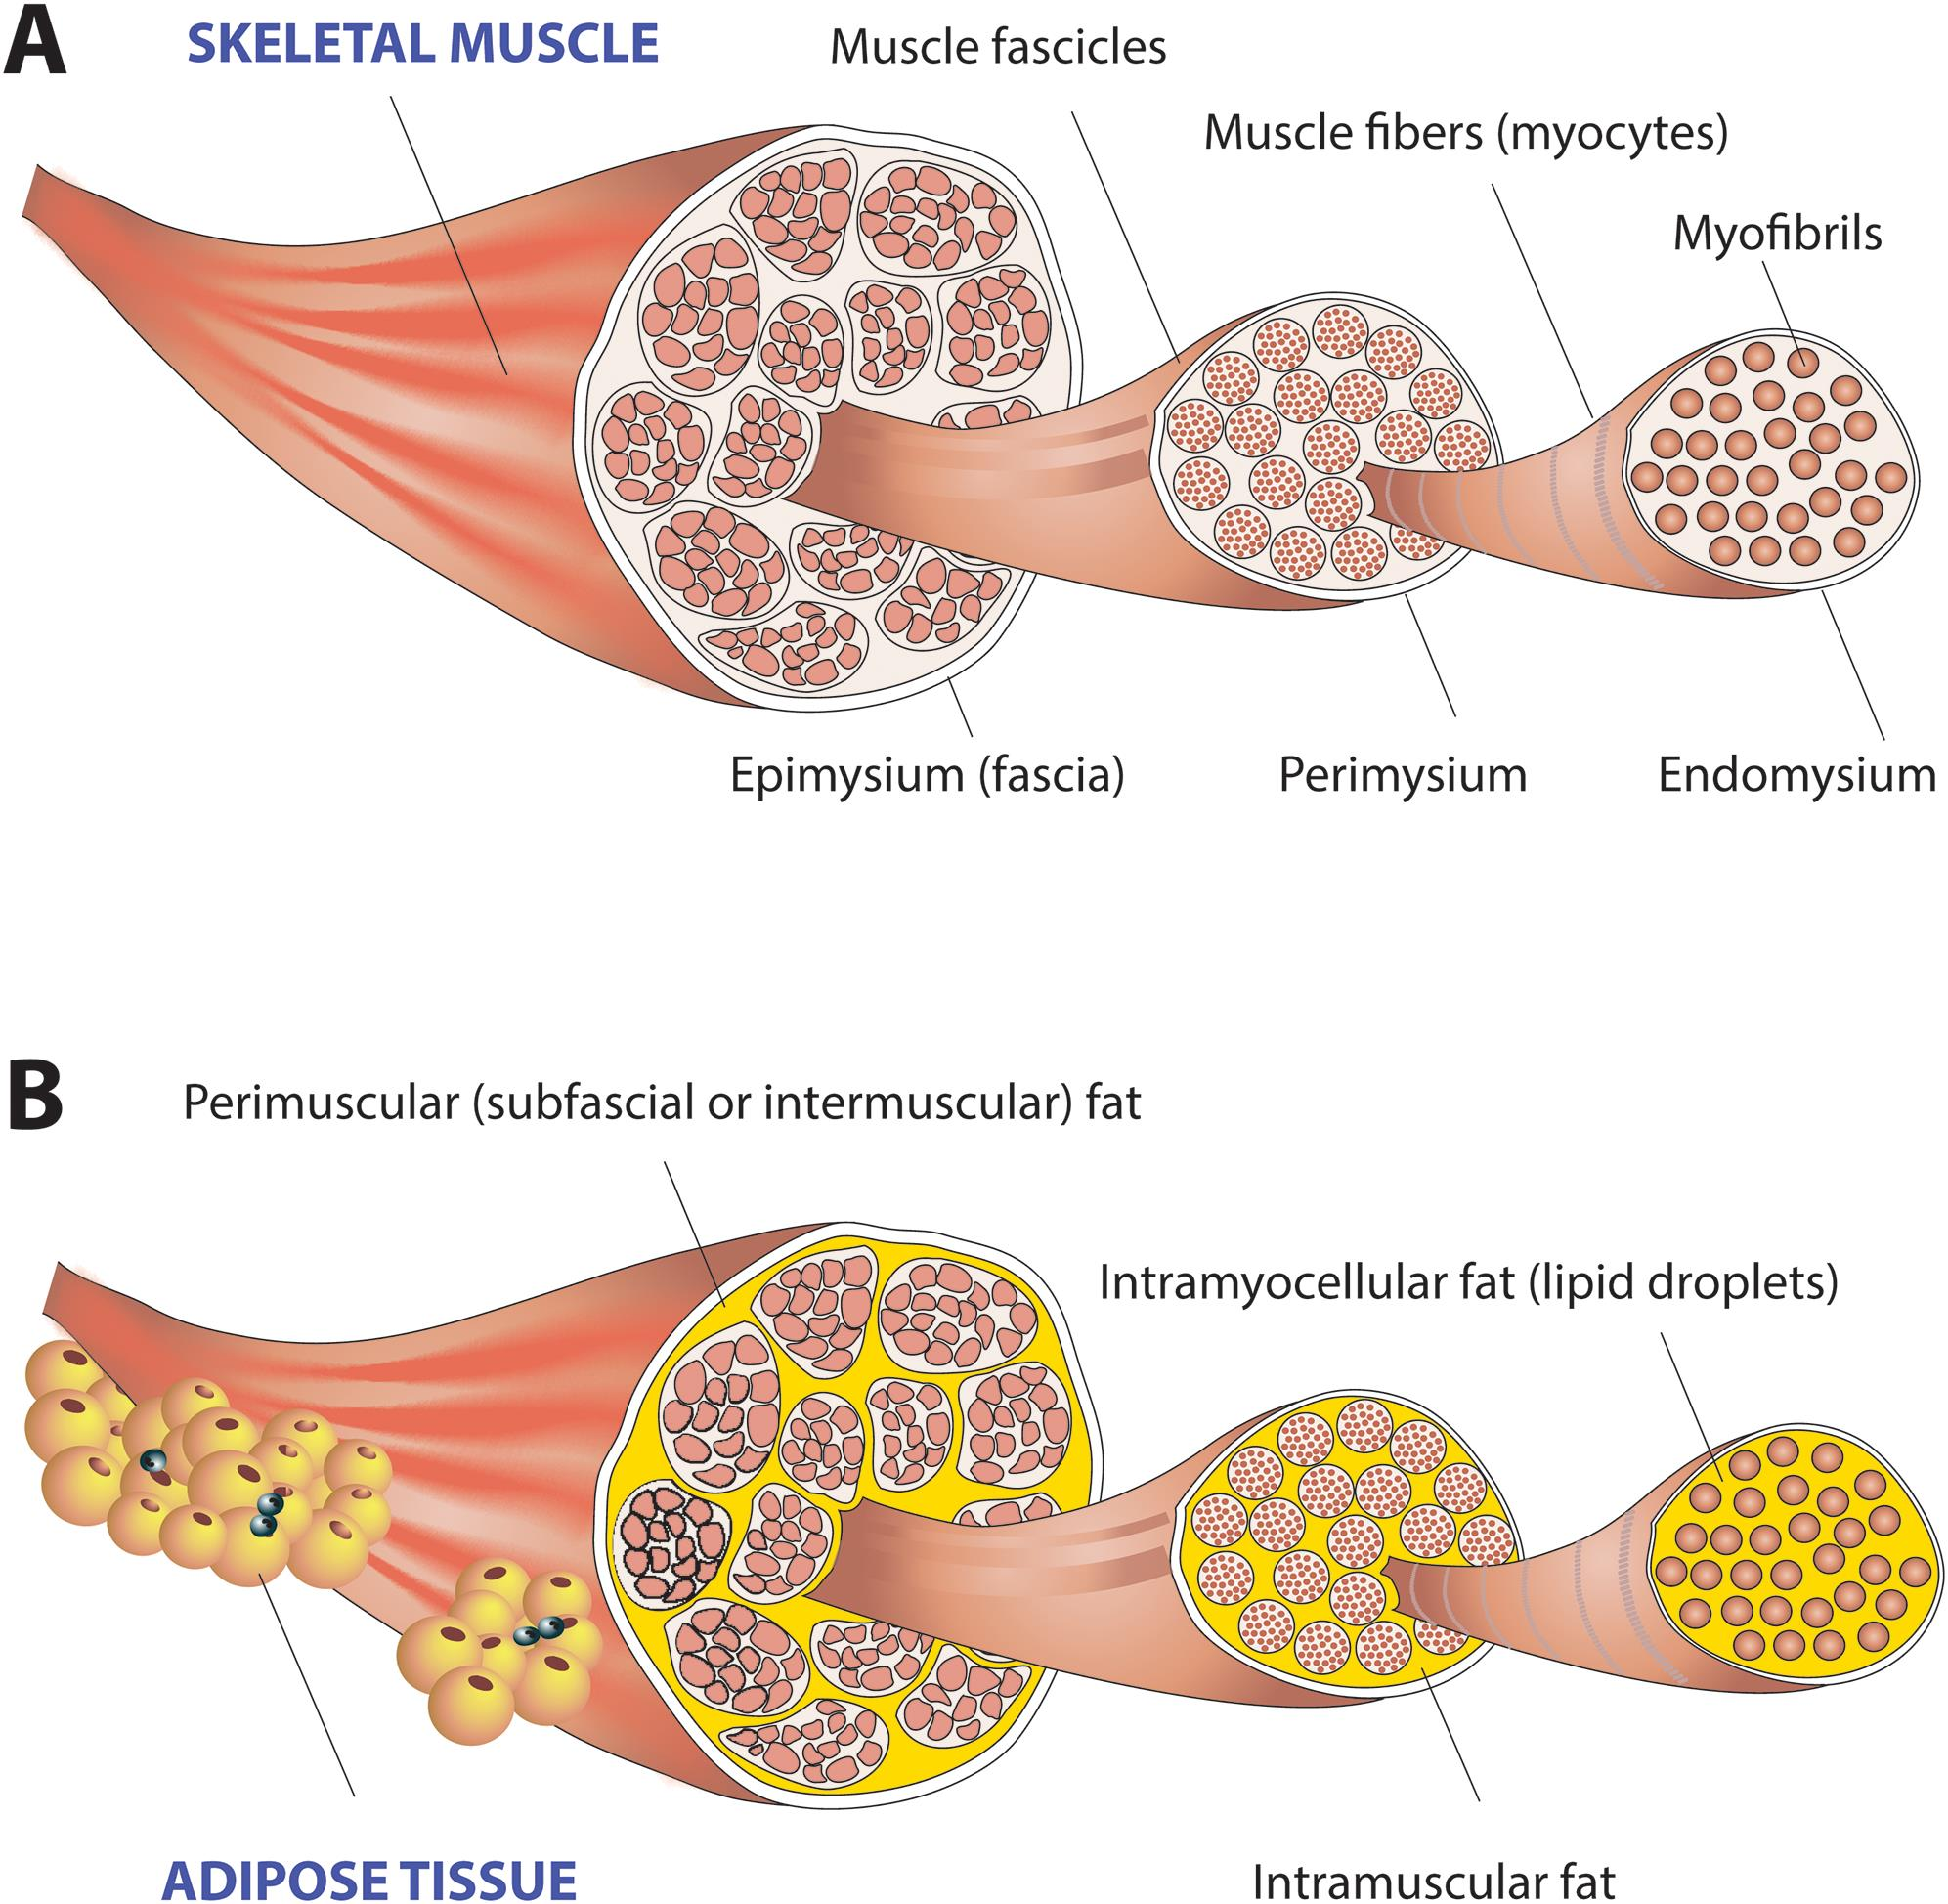 <bold>Skeletal muscle and fat deposition.</bold> (A) Skeletal muscle is made up of intramyocellular myofibrils, muscle fibers and fascicles bound together by successively thicker connective tissue layers as endomysium, perimysium, and epimysium. (B) Skeletal muscle fat may be classified as intramyocellular (lipid droplets filling the cytoplasm between myofibrils of elongated myocytes) and extramyocellular components. Adipocytes may infiltrate muscle fibers (intramuscular fat), fascicles (intermuscular fat), or exist around the epimysium as extramuscular fat depots of adipose tissue.